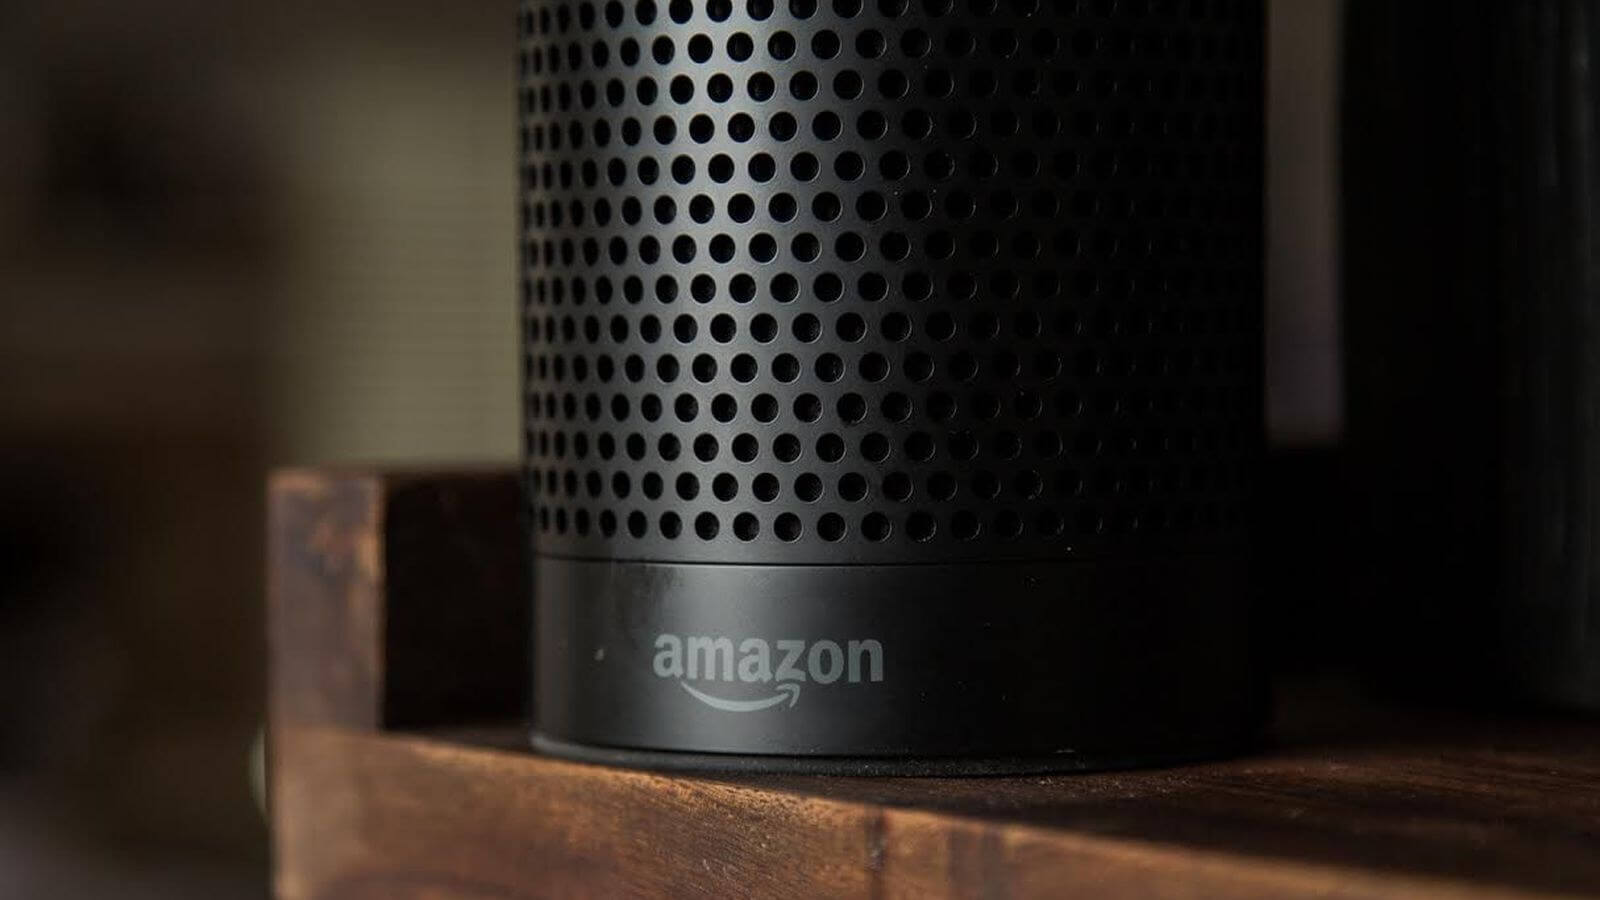 Alexa's Whisper Mode rolls out to Echo speakers